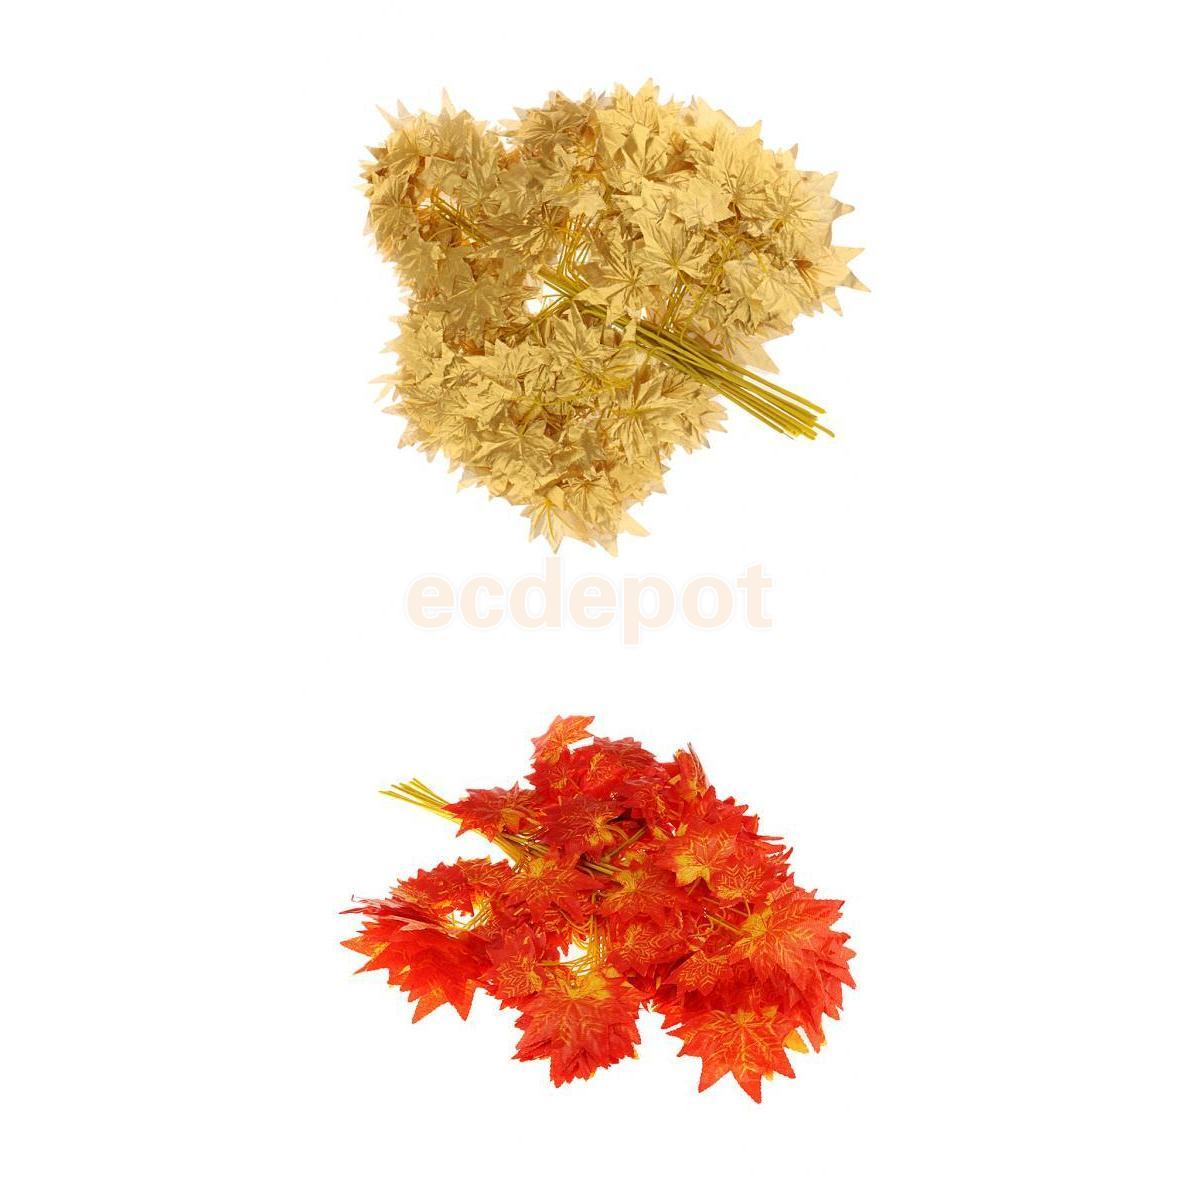 24pcs Artificial Maple Leaves Simulation Decorative Maple Leaves For Home Wedding New Year Decor